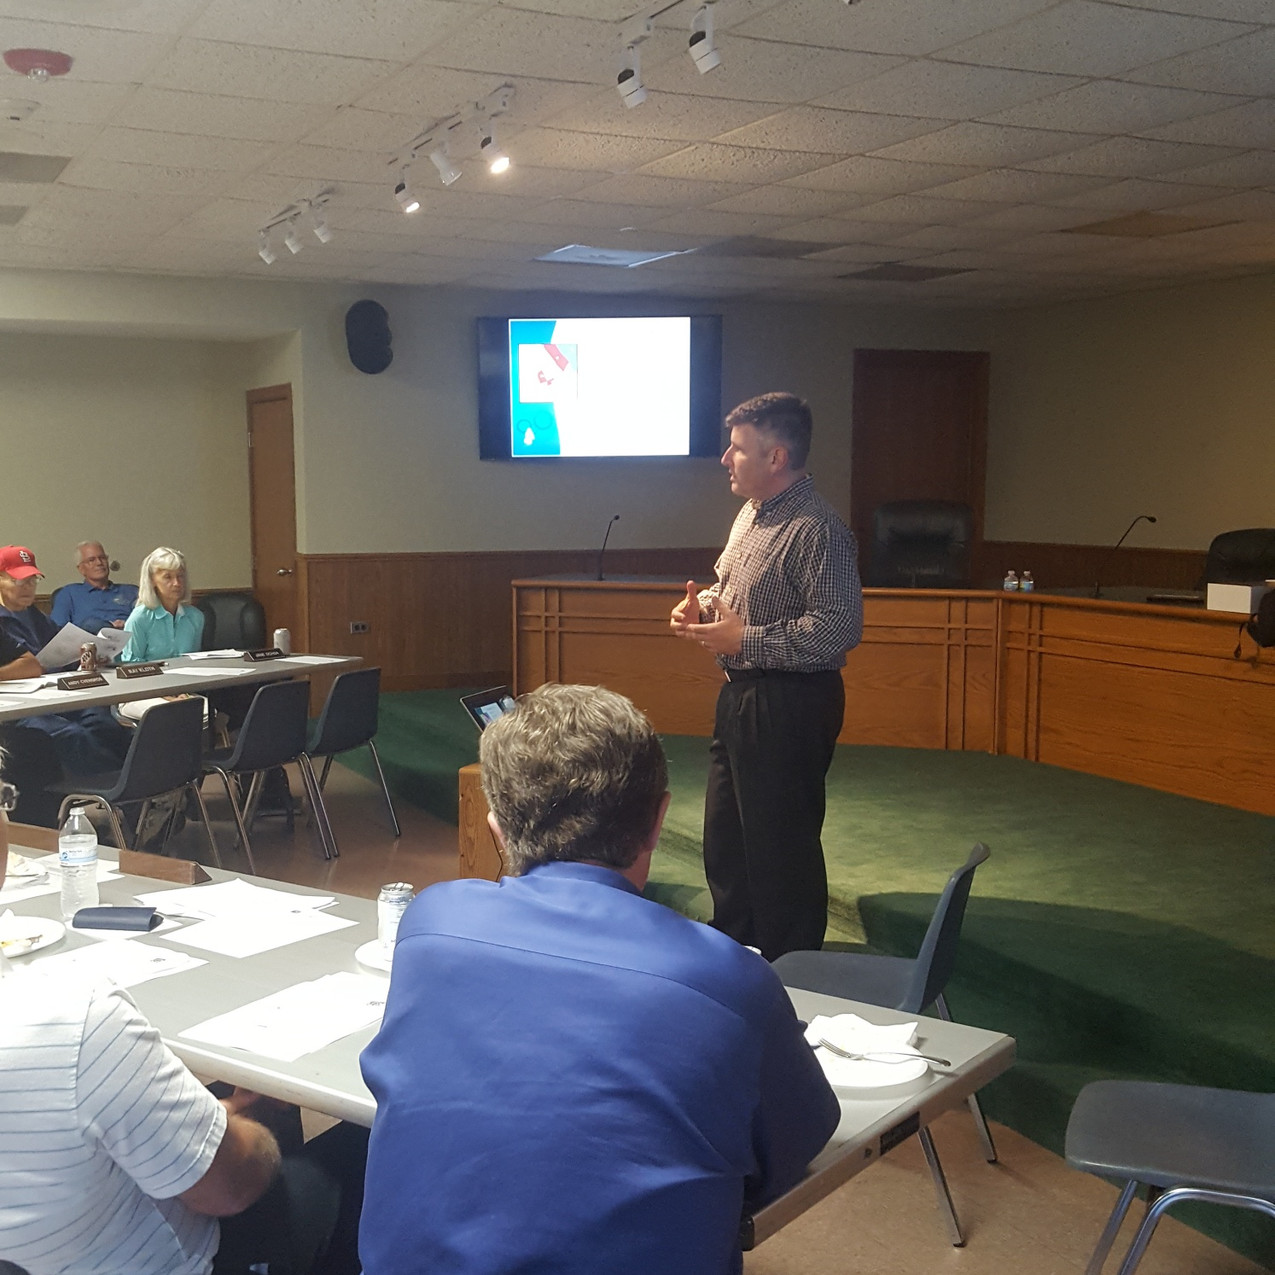 Dan Underleider, AICP the Community Development Director from the Village of Clarendon Hills presents to the Village of Beach Park Plan Commission / Zoning Board, Village Trustees, and staff on August 22, 2017. (photo by Michael Blue, FAICP, APA-IL Planning Officials Development Officer)